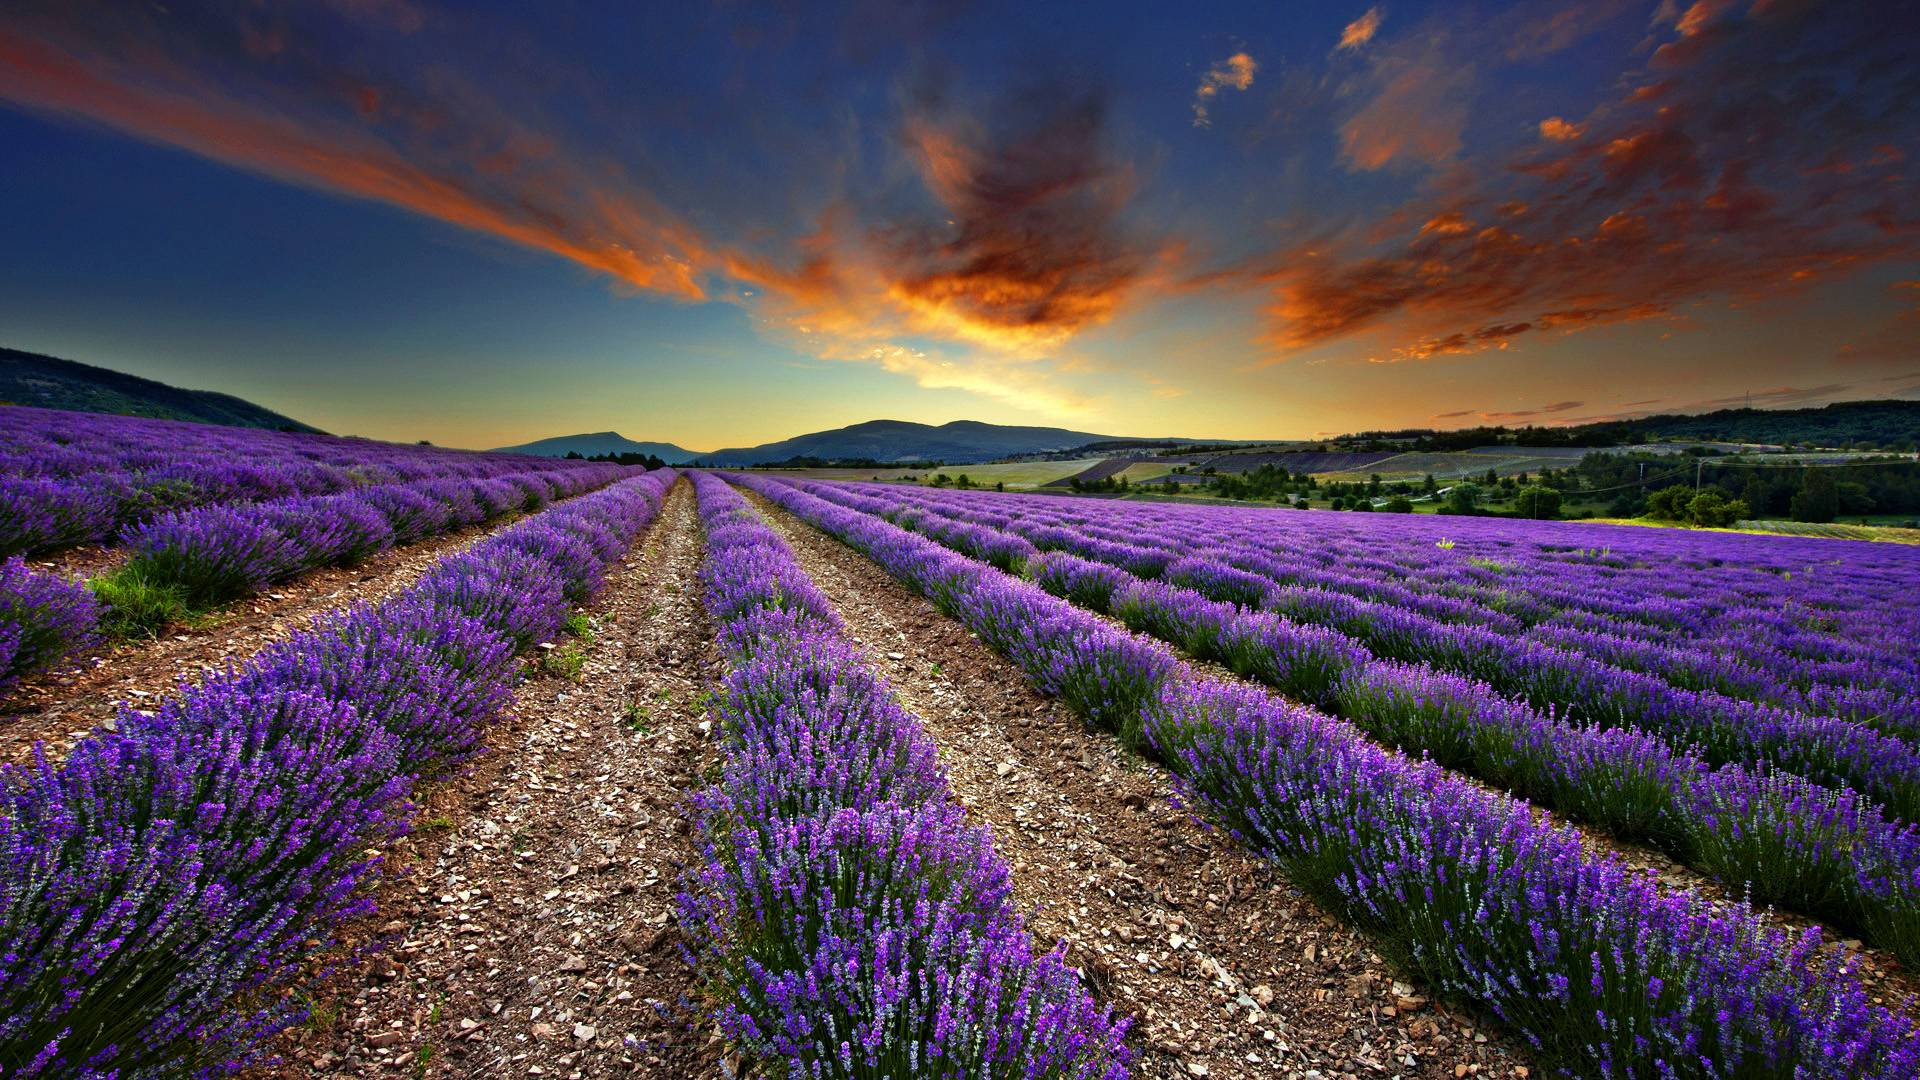 Lavender Wallpapers - Wallpaper Cave